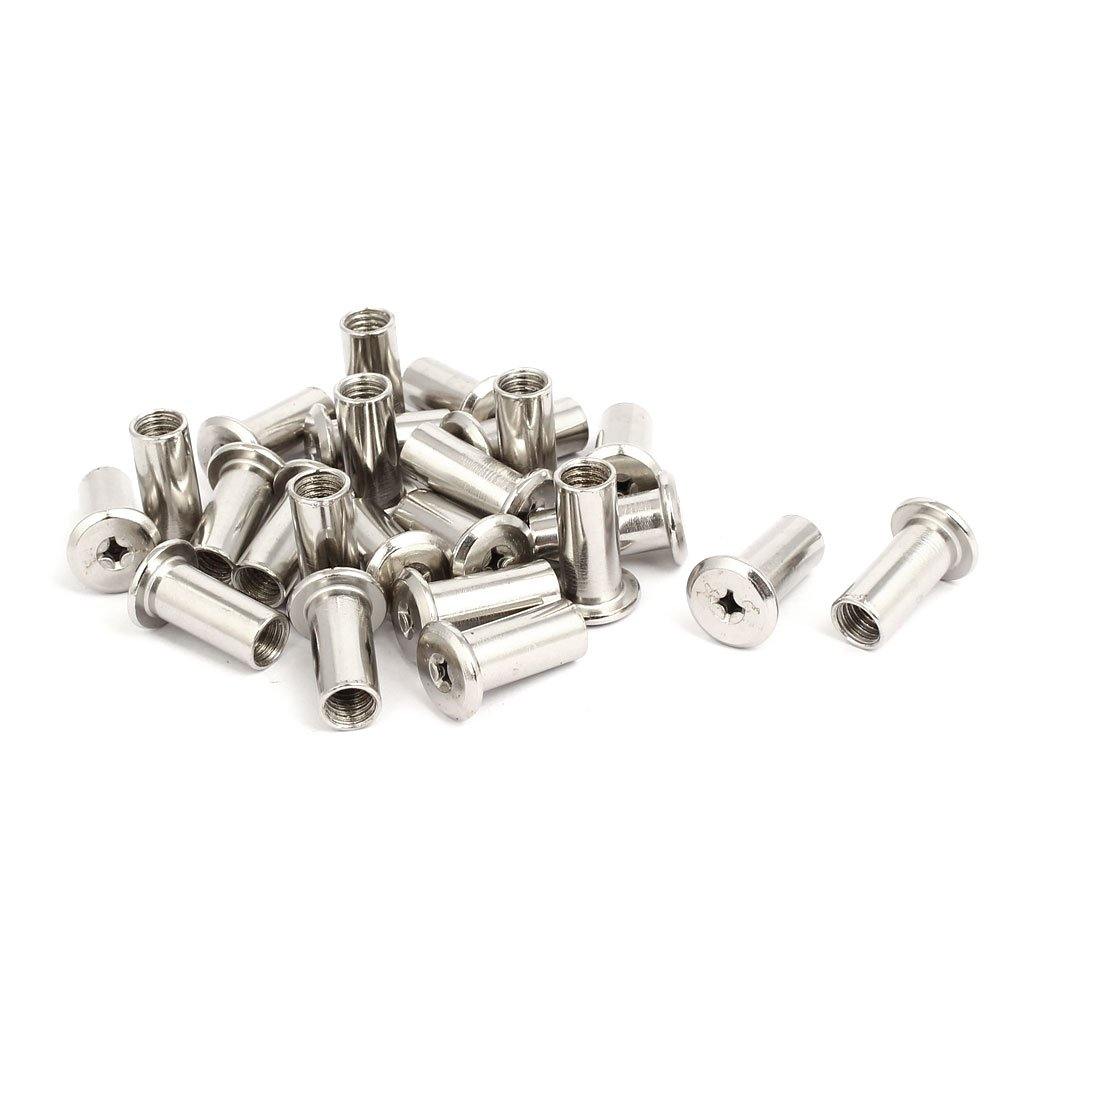 uxcell M8x22mm Female Thread Phillips Head Bucket Nut Furniture Fittings 24pcs